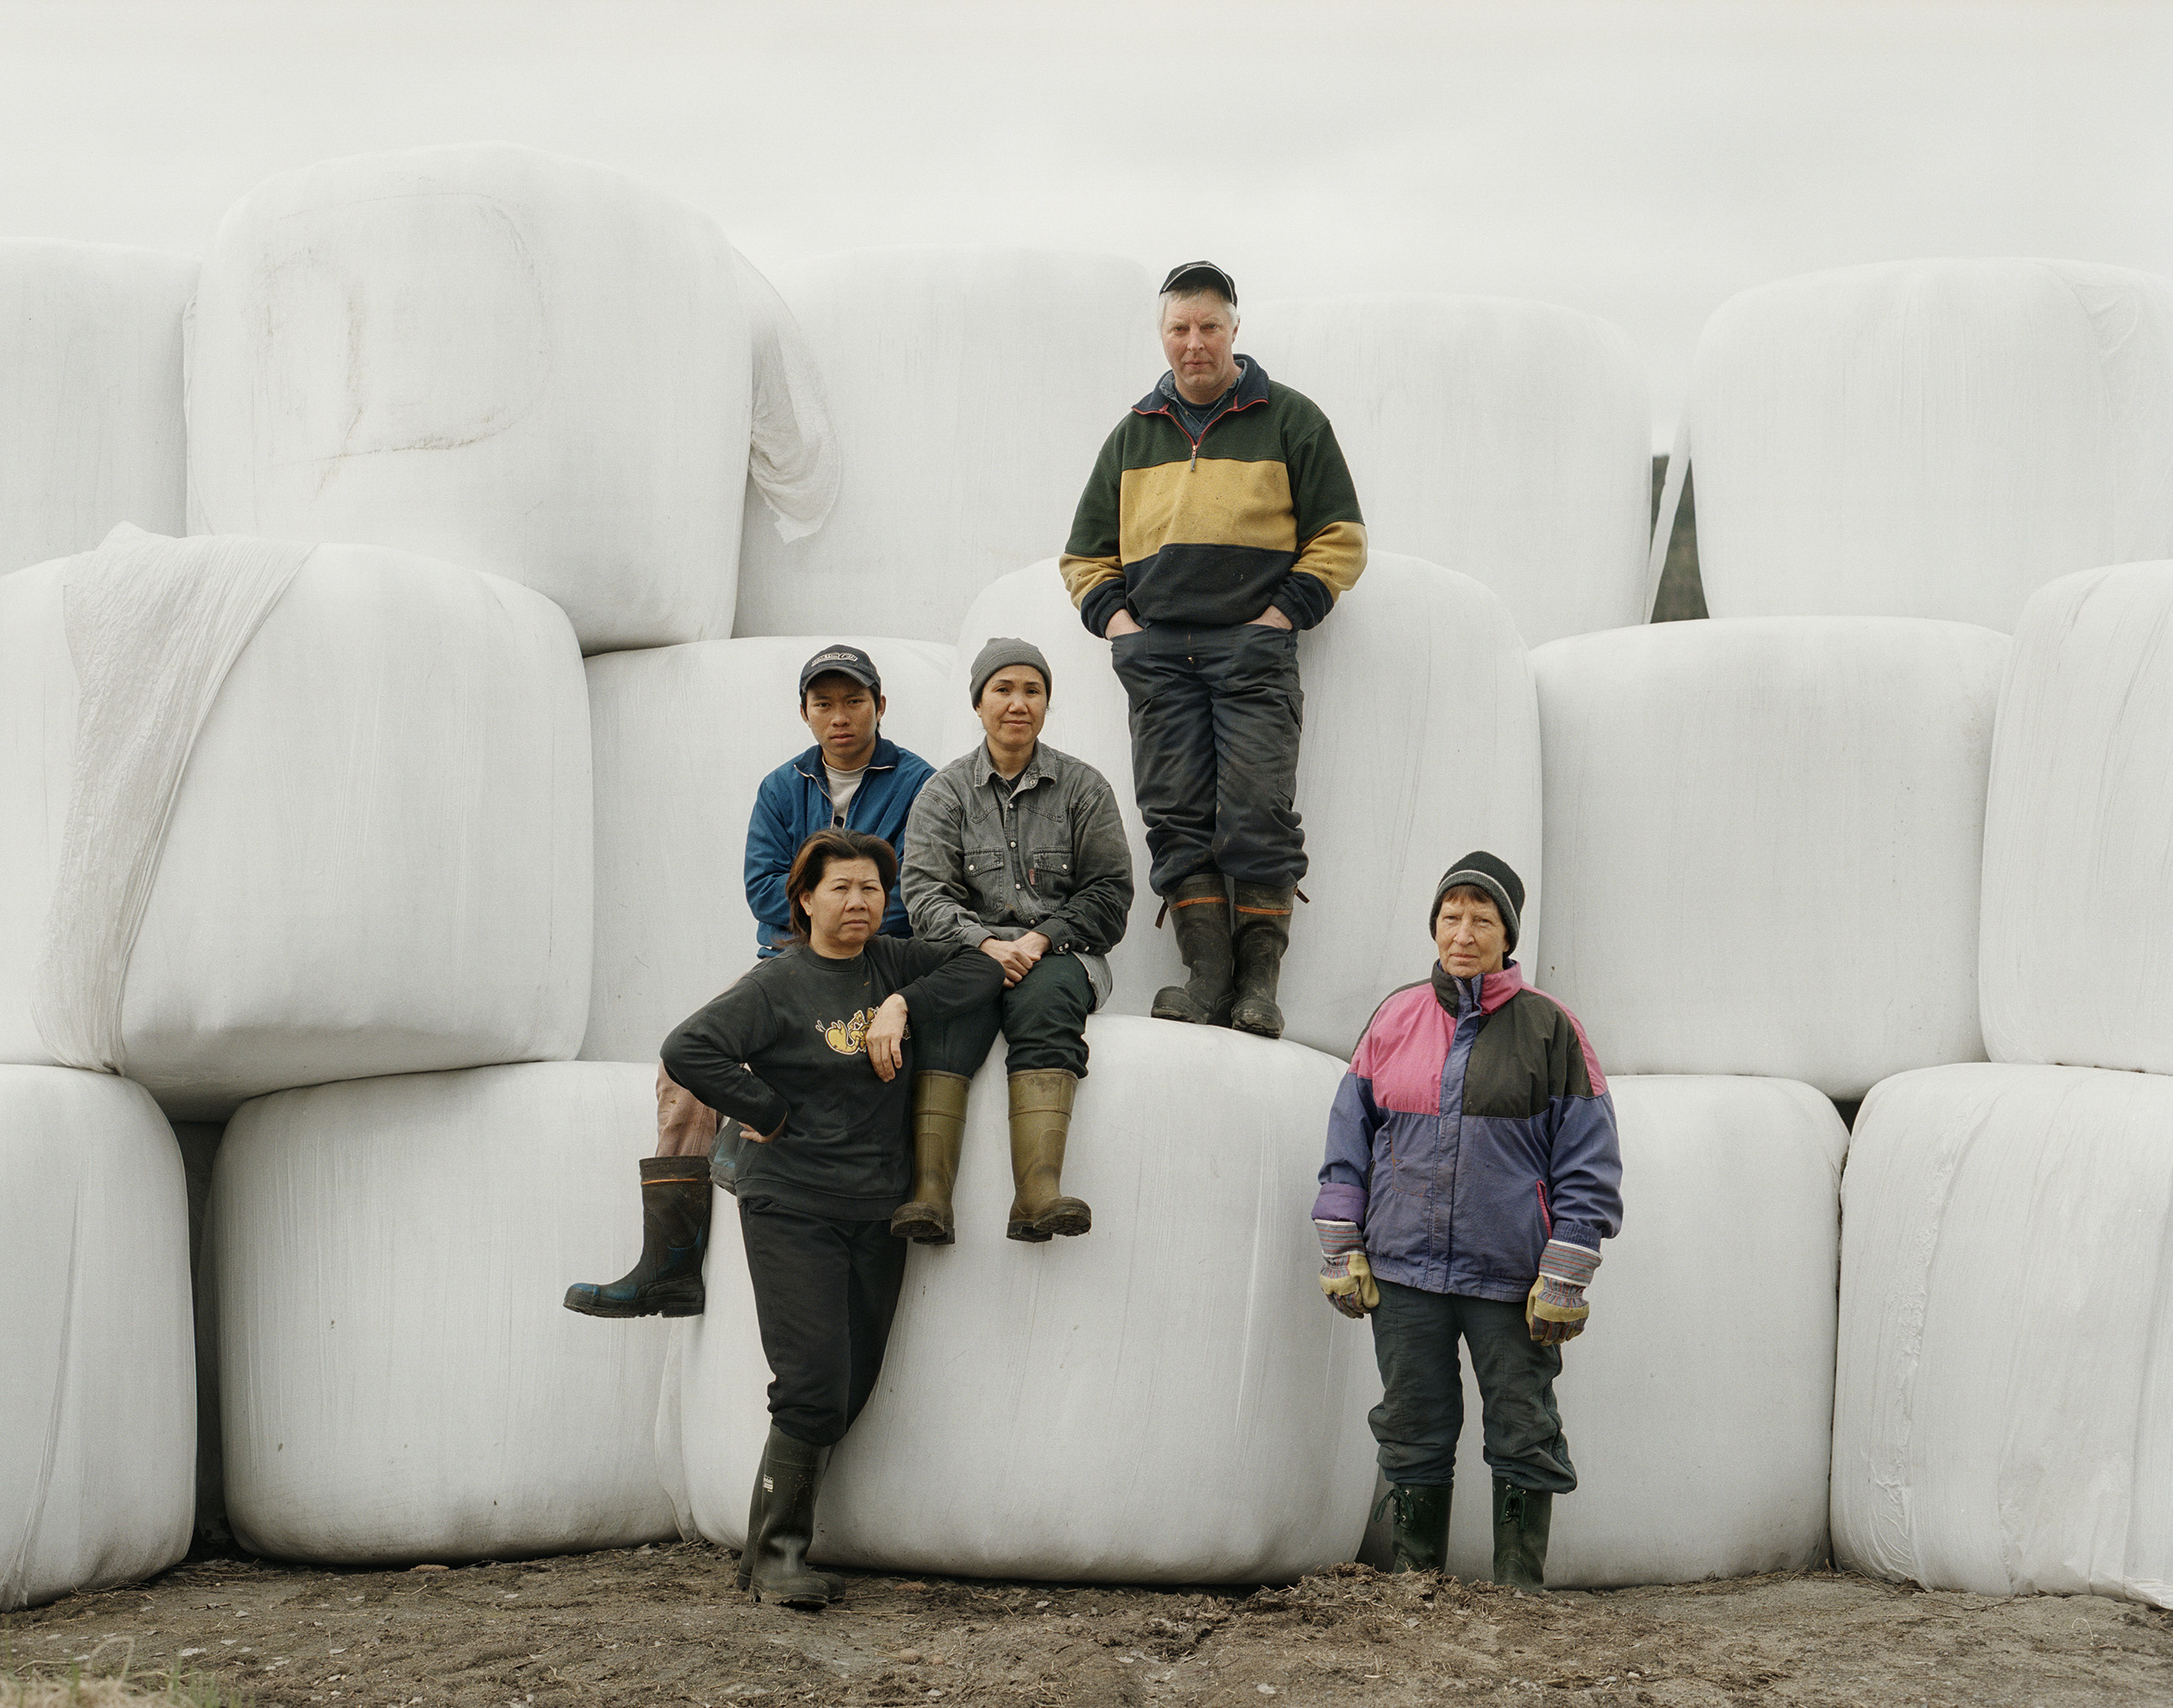 Group photo on silage bales, 2007. In the middle: farmer Mats-Åke and his fiancé, Ampawan; at right, Mats-Åke's mother, and at left, Ampawan's visiting relatives from Thailand, Balsjö.